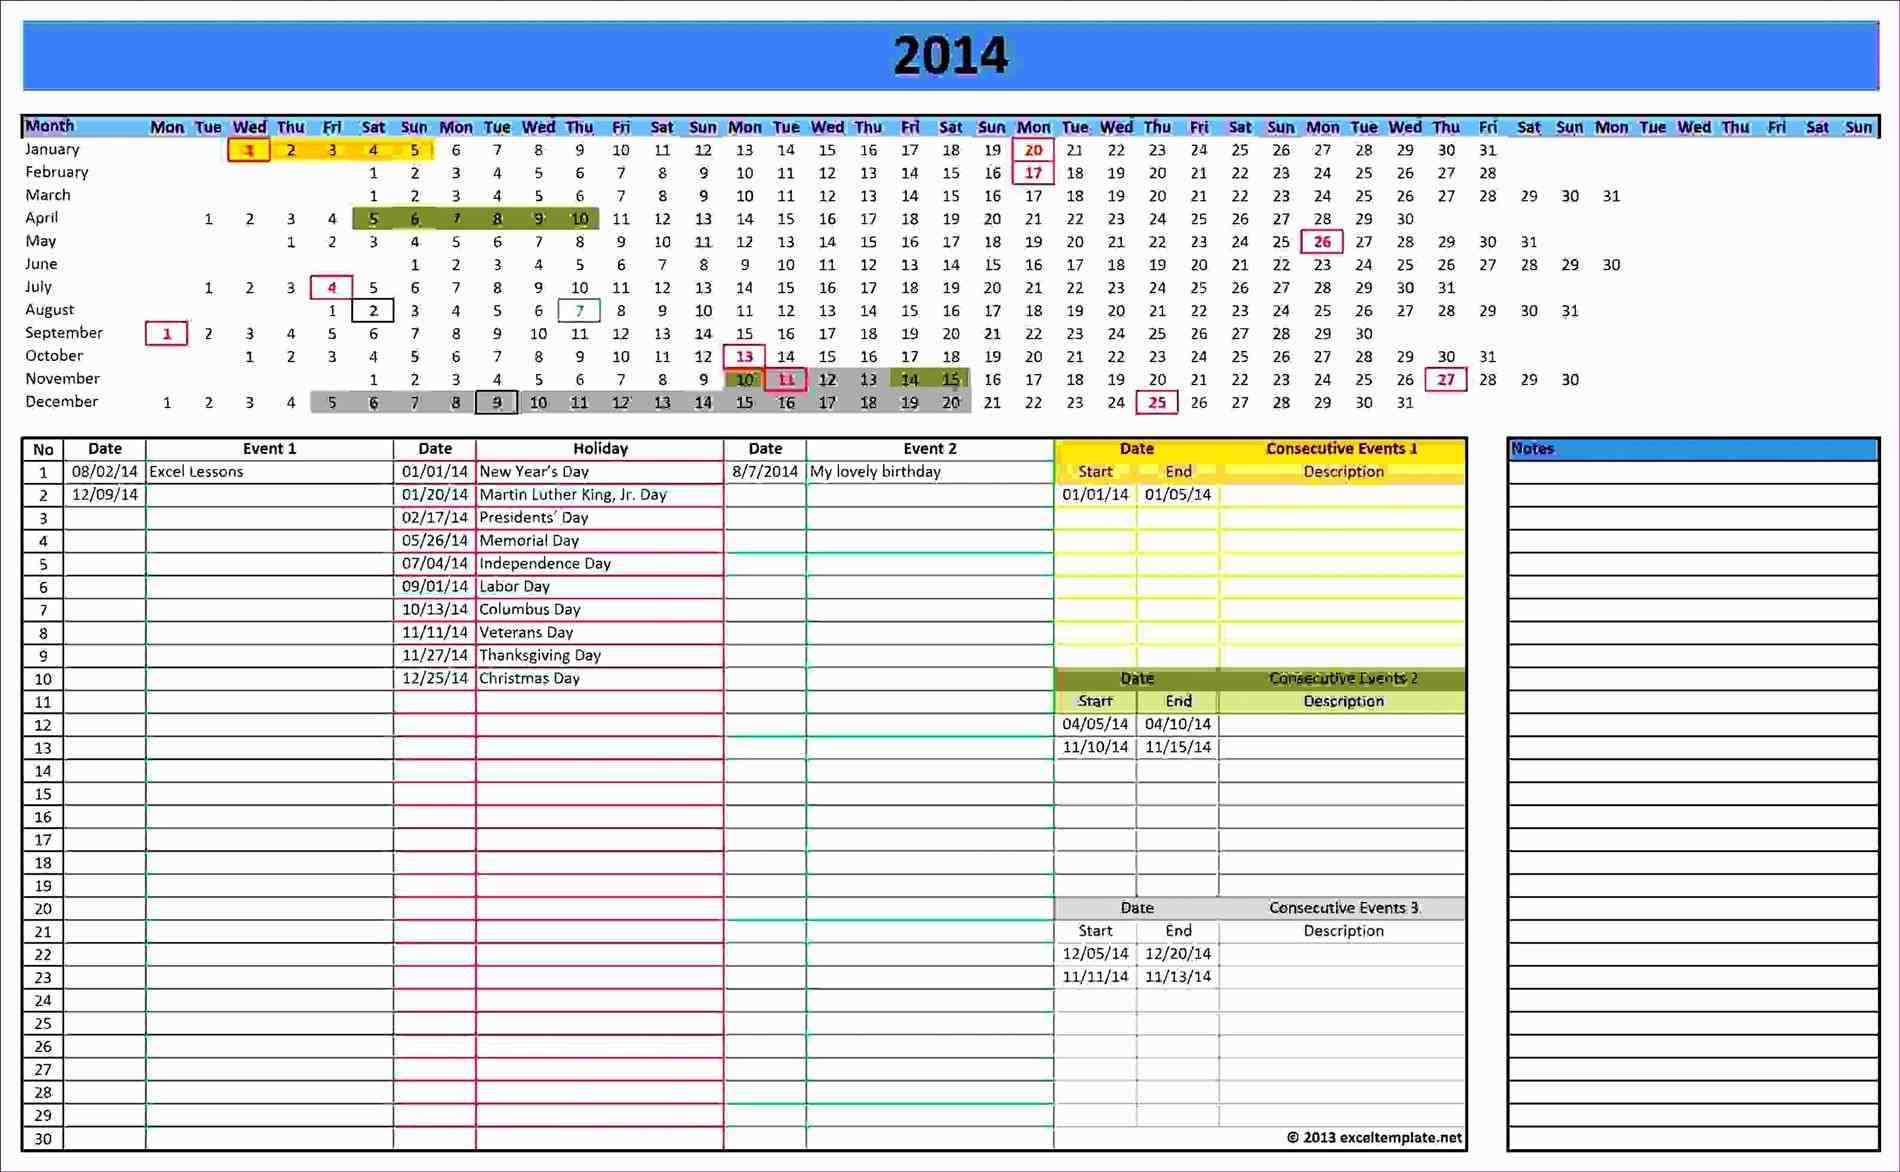 ideas rhamericantapesus new Capacity Planning Excel Template Free manufacturing capacity planning excel documents ideas rhamericantapesus staff template awesome project rhzooryxus staff